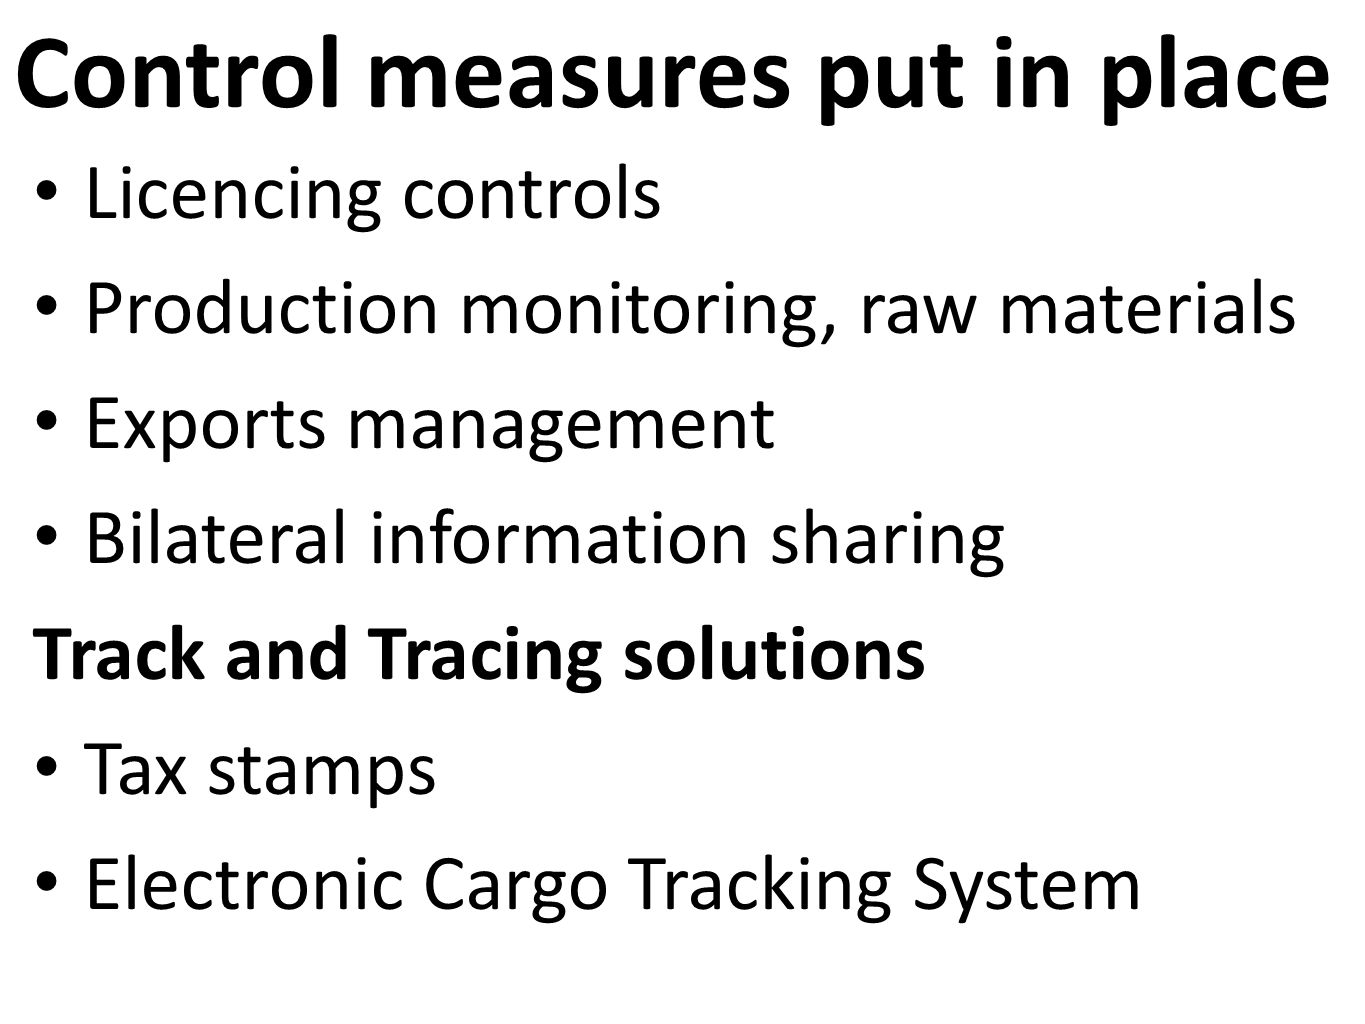 Control measures put in place Licencing controls Production monitoring, raw materials Exports management Bilateral information sharing Track and Tracing solutions Tax stamps Electronic Cargo Tracking System